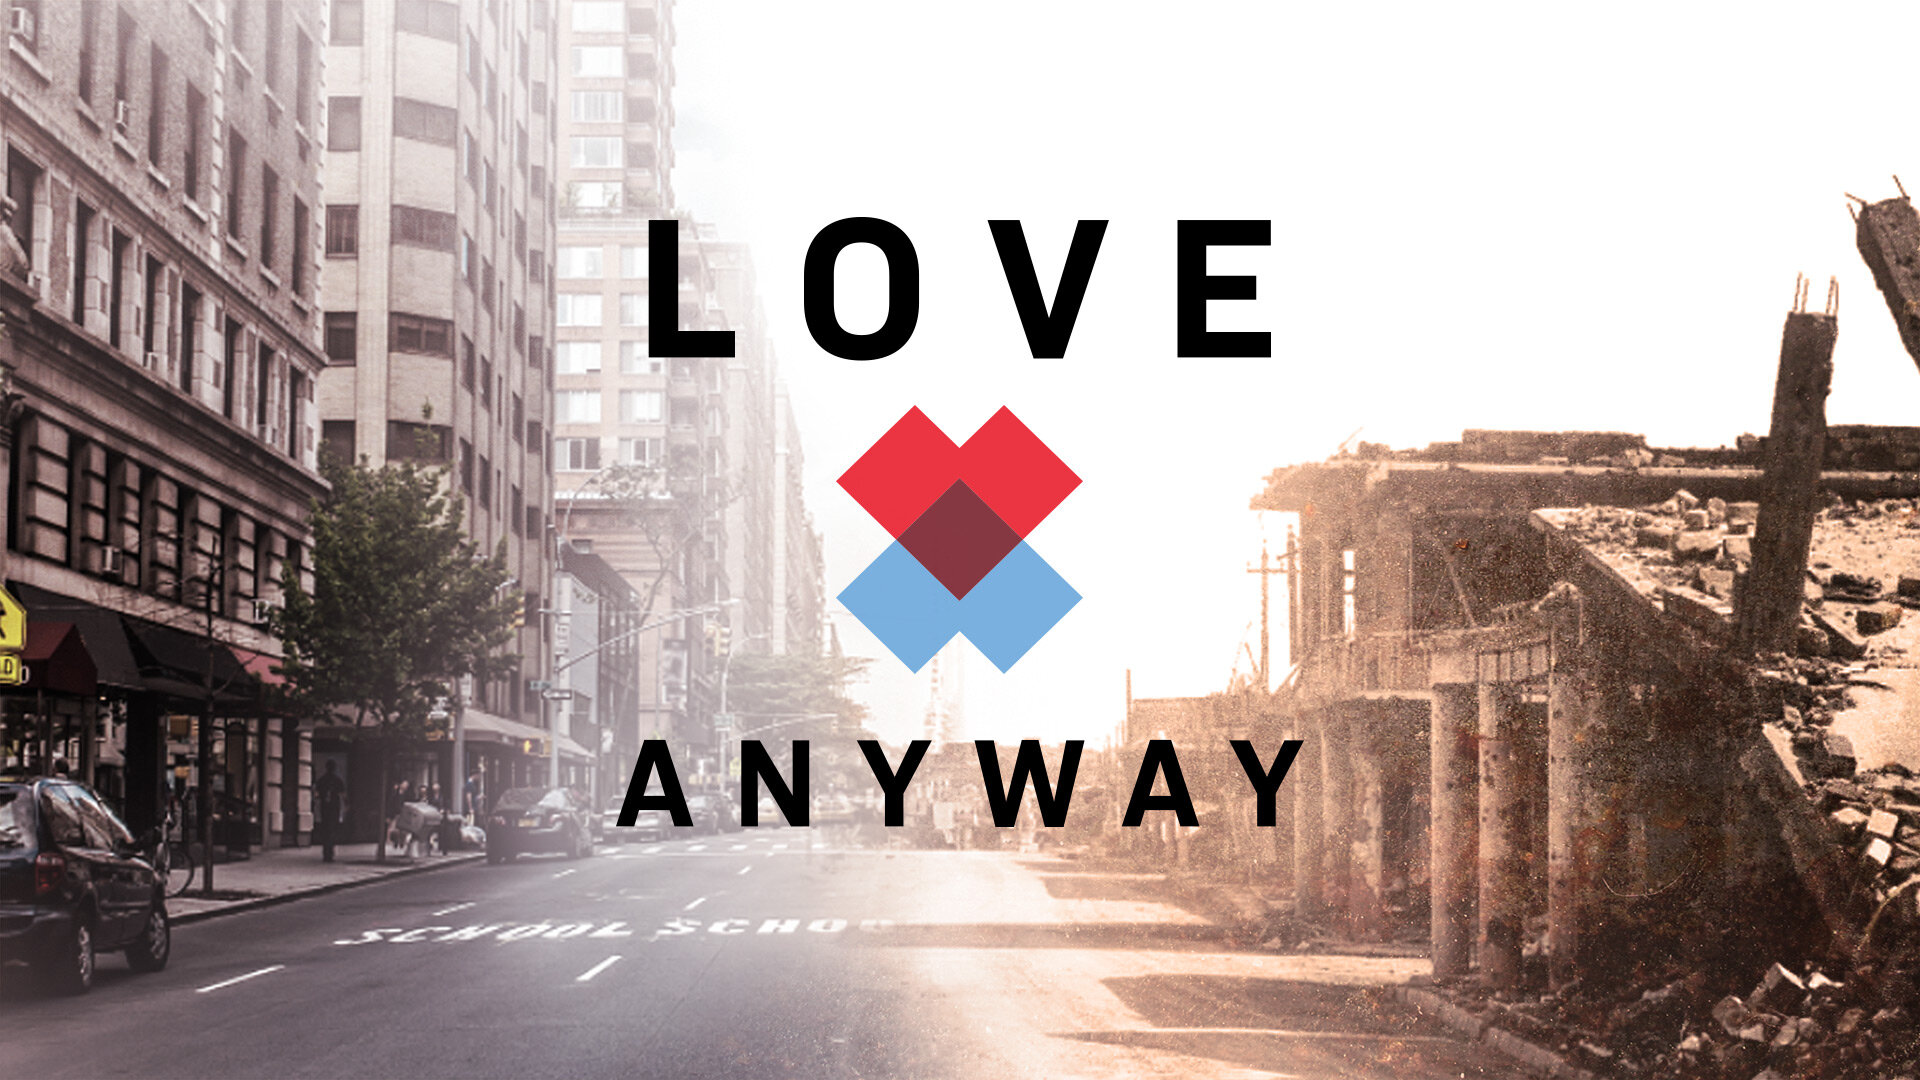 Love Anyway 4.jpg